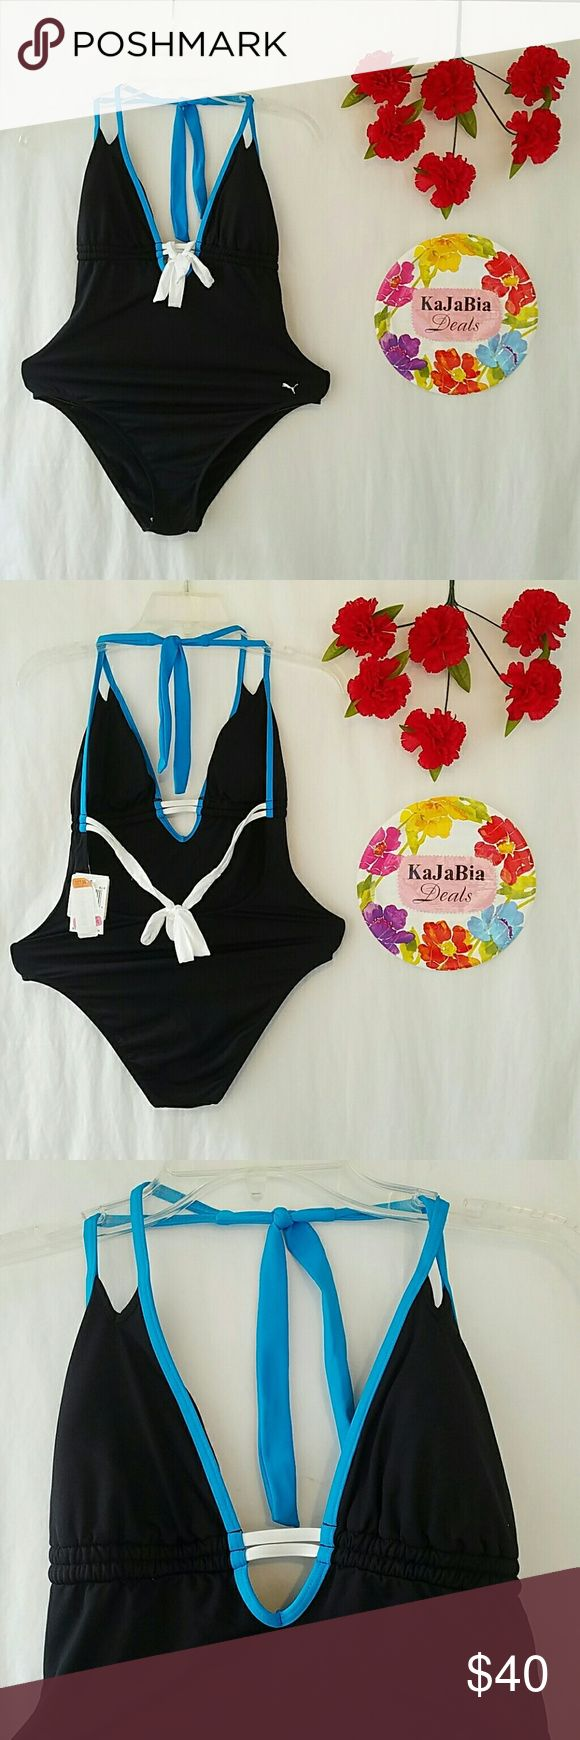 PUMA one piece Swimsuit NWT. Size M NWT. Never worn. Perfect condition. Made in Mexico with fabric made in USA. Shell 82% nylon 18% spandex. Lining 100% nylon. Very sexy U opening on chest. Padded insert on breast. Low back with straps to tie. Clasic color of puma clothing. Very small stains on strap hardly noticeable and probably washable !! Puma Swim One Pieces